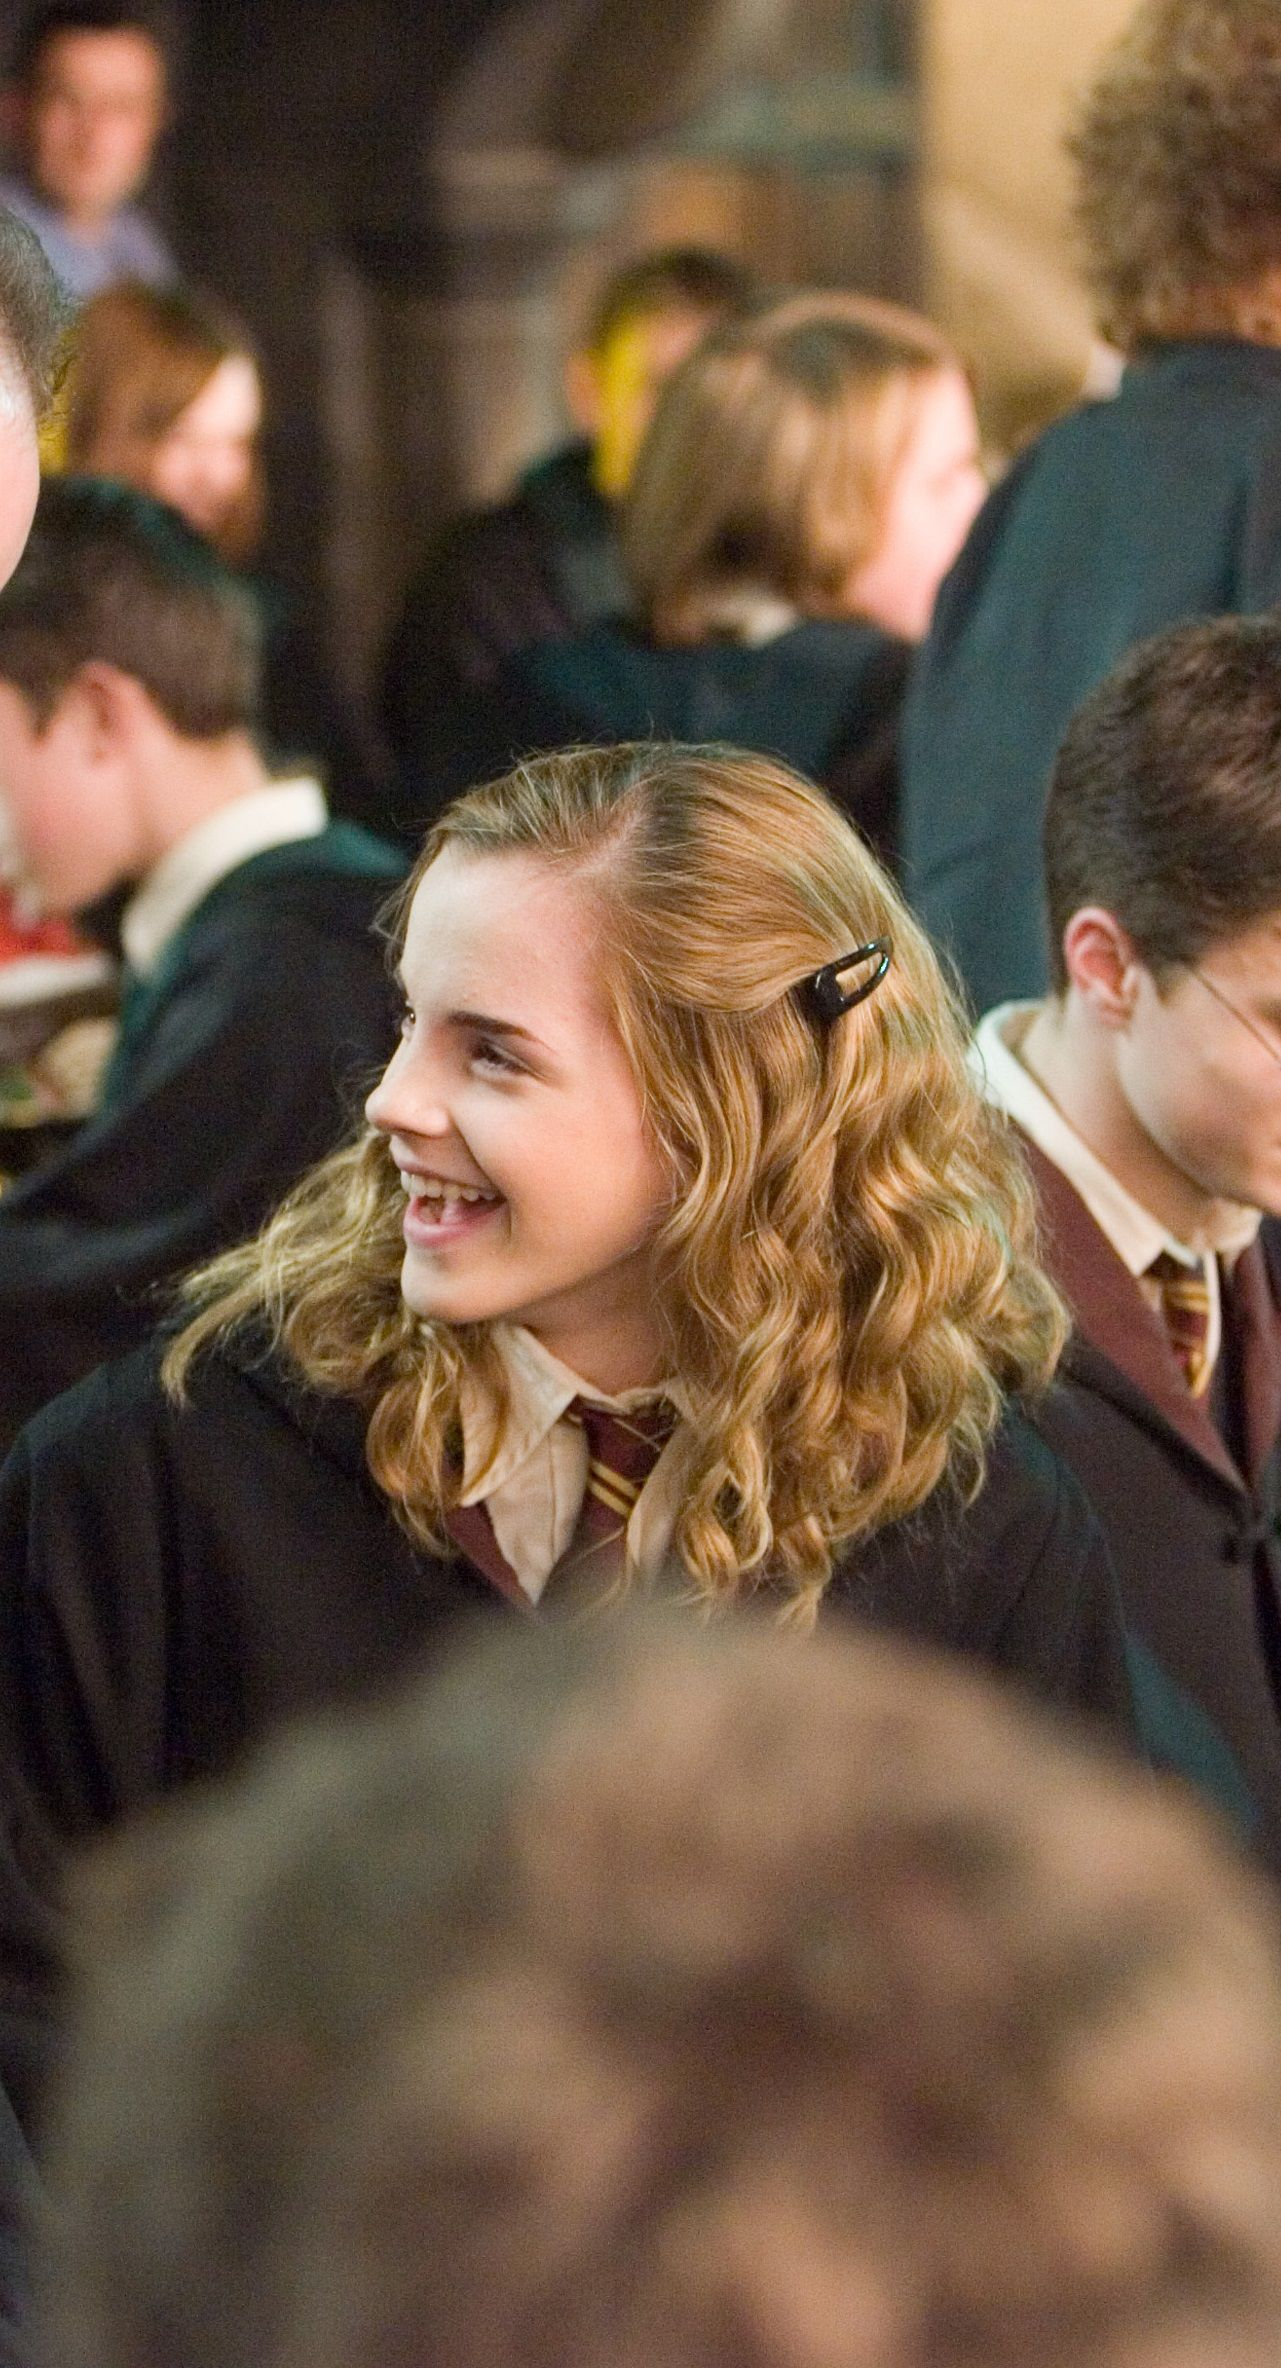 Emma Watson In Harry Potter And The Order Of The Phoenix Fernsehserie Harry And Hermione Hermine Granger Harry Potter Film